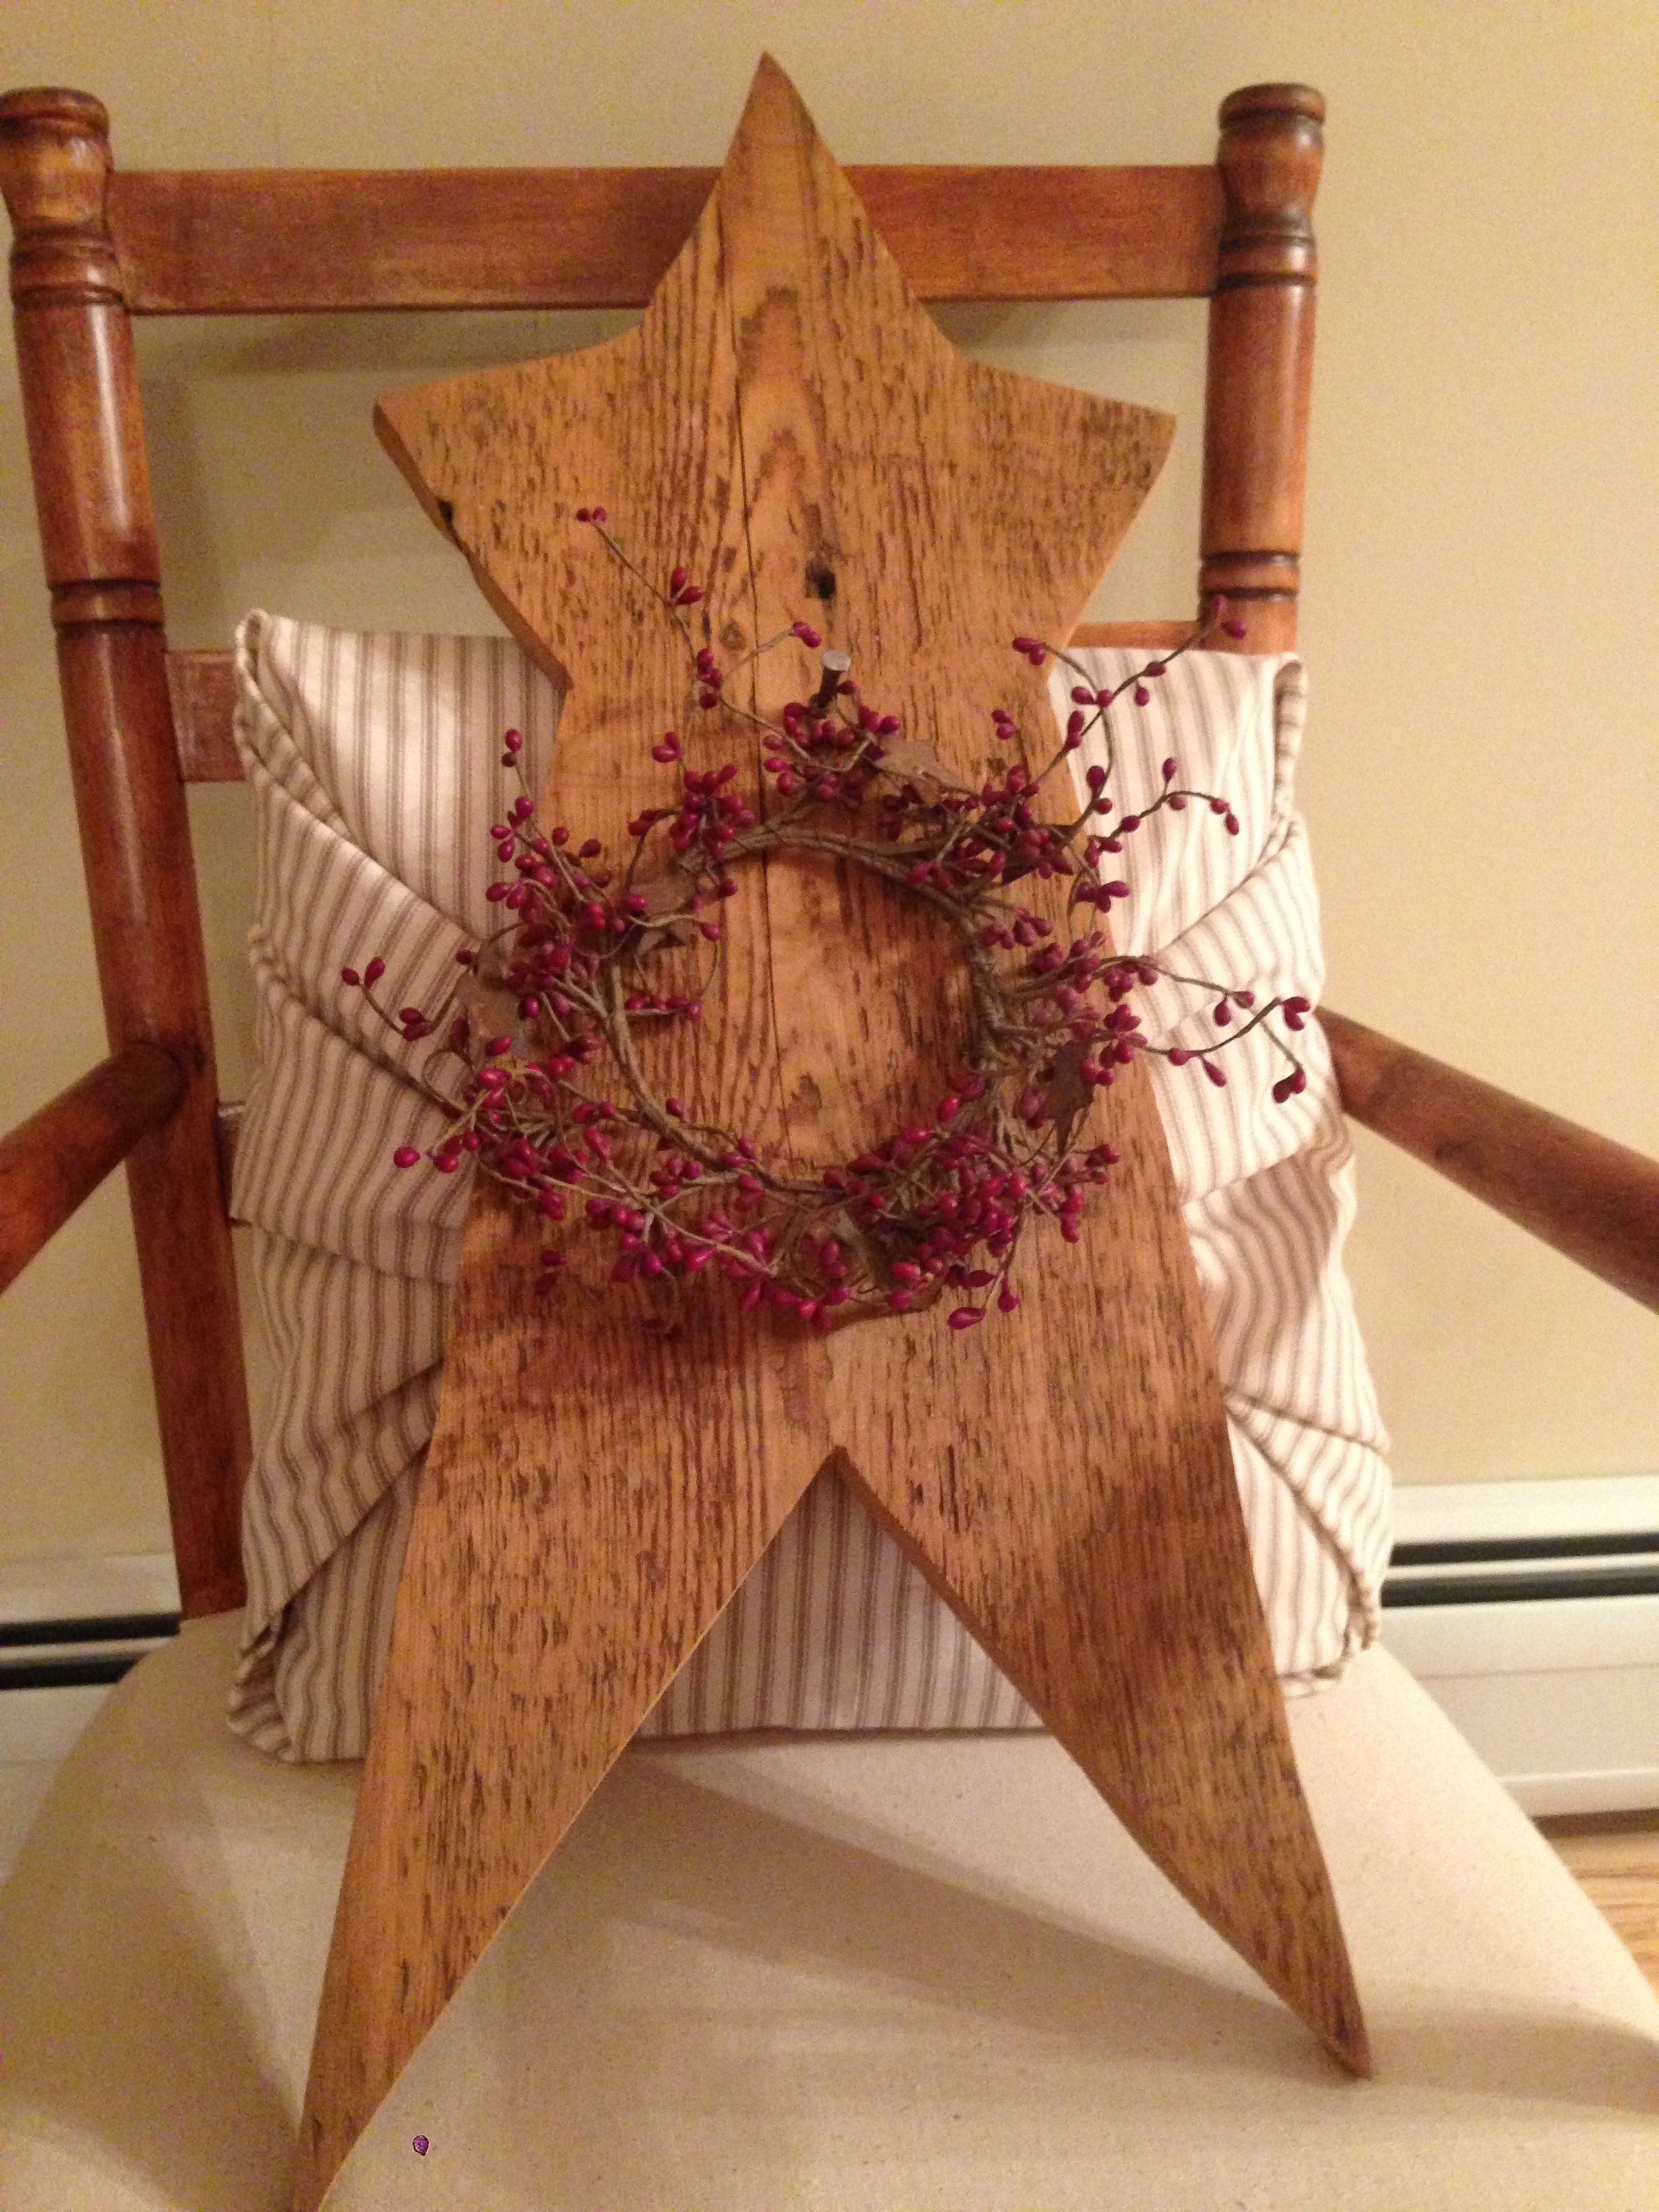 Barn Wood Art Ideas Barn Board Star My Home Projects Recycled Decor Old